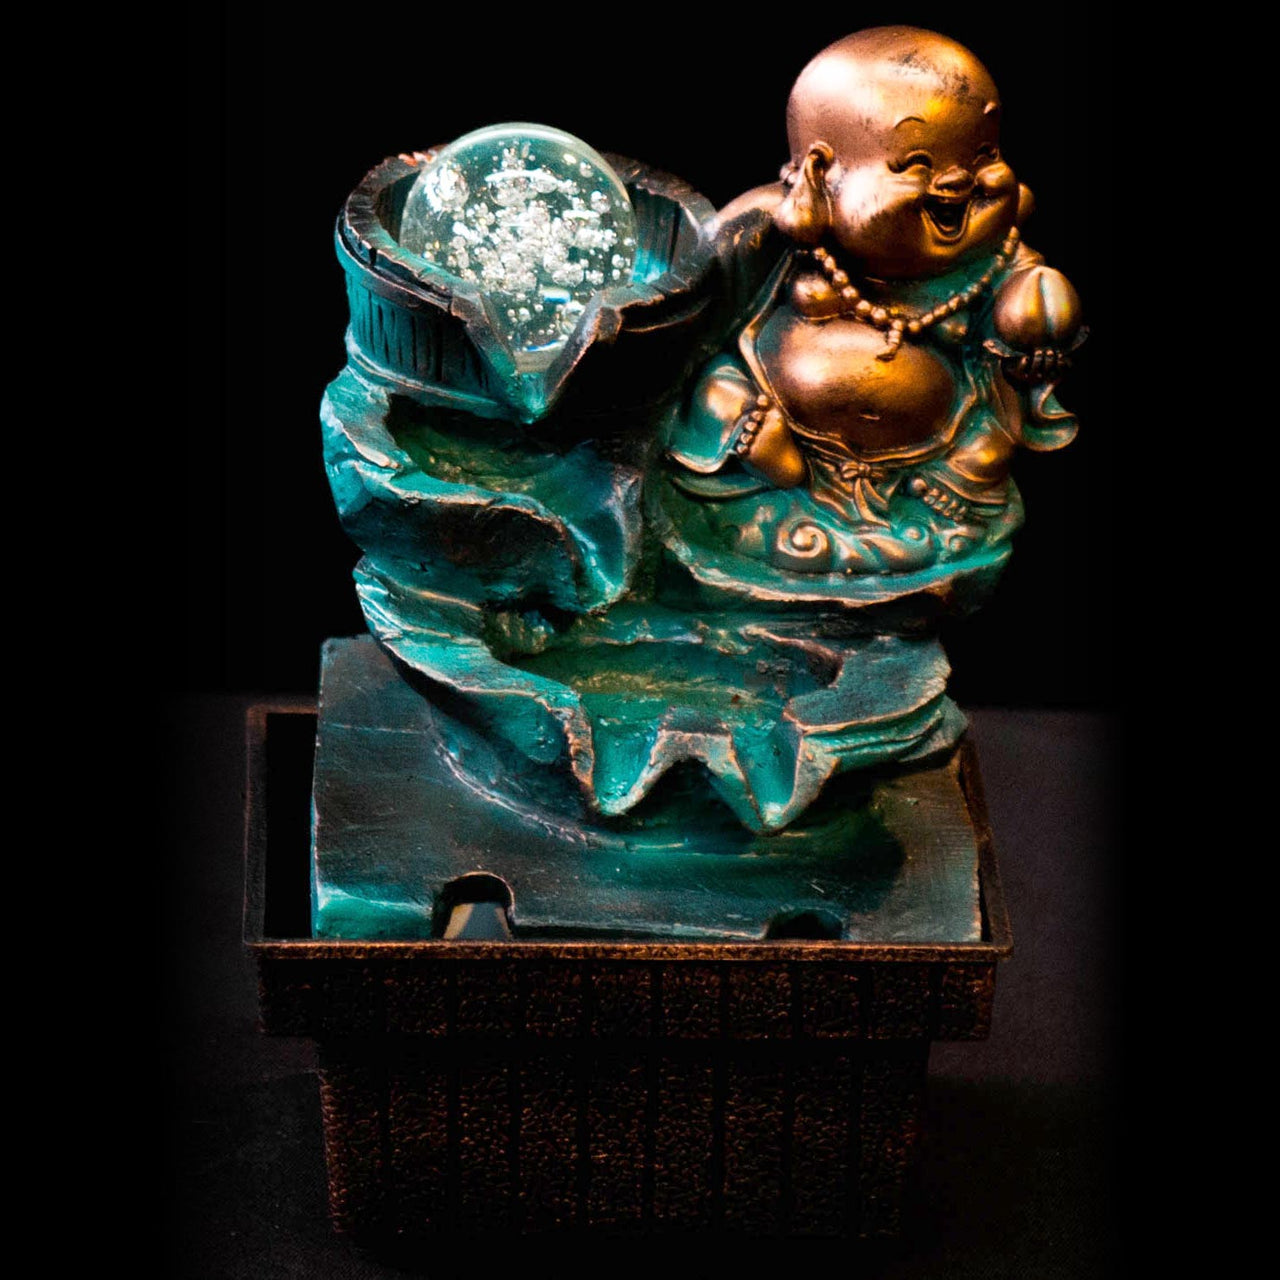 HCFT5453 - Blue Happy Buddha with Pots Fountain